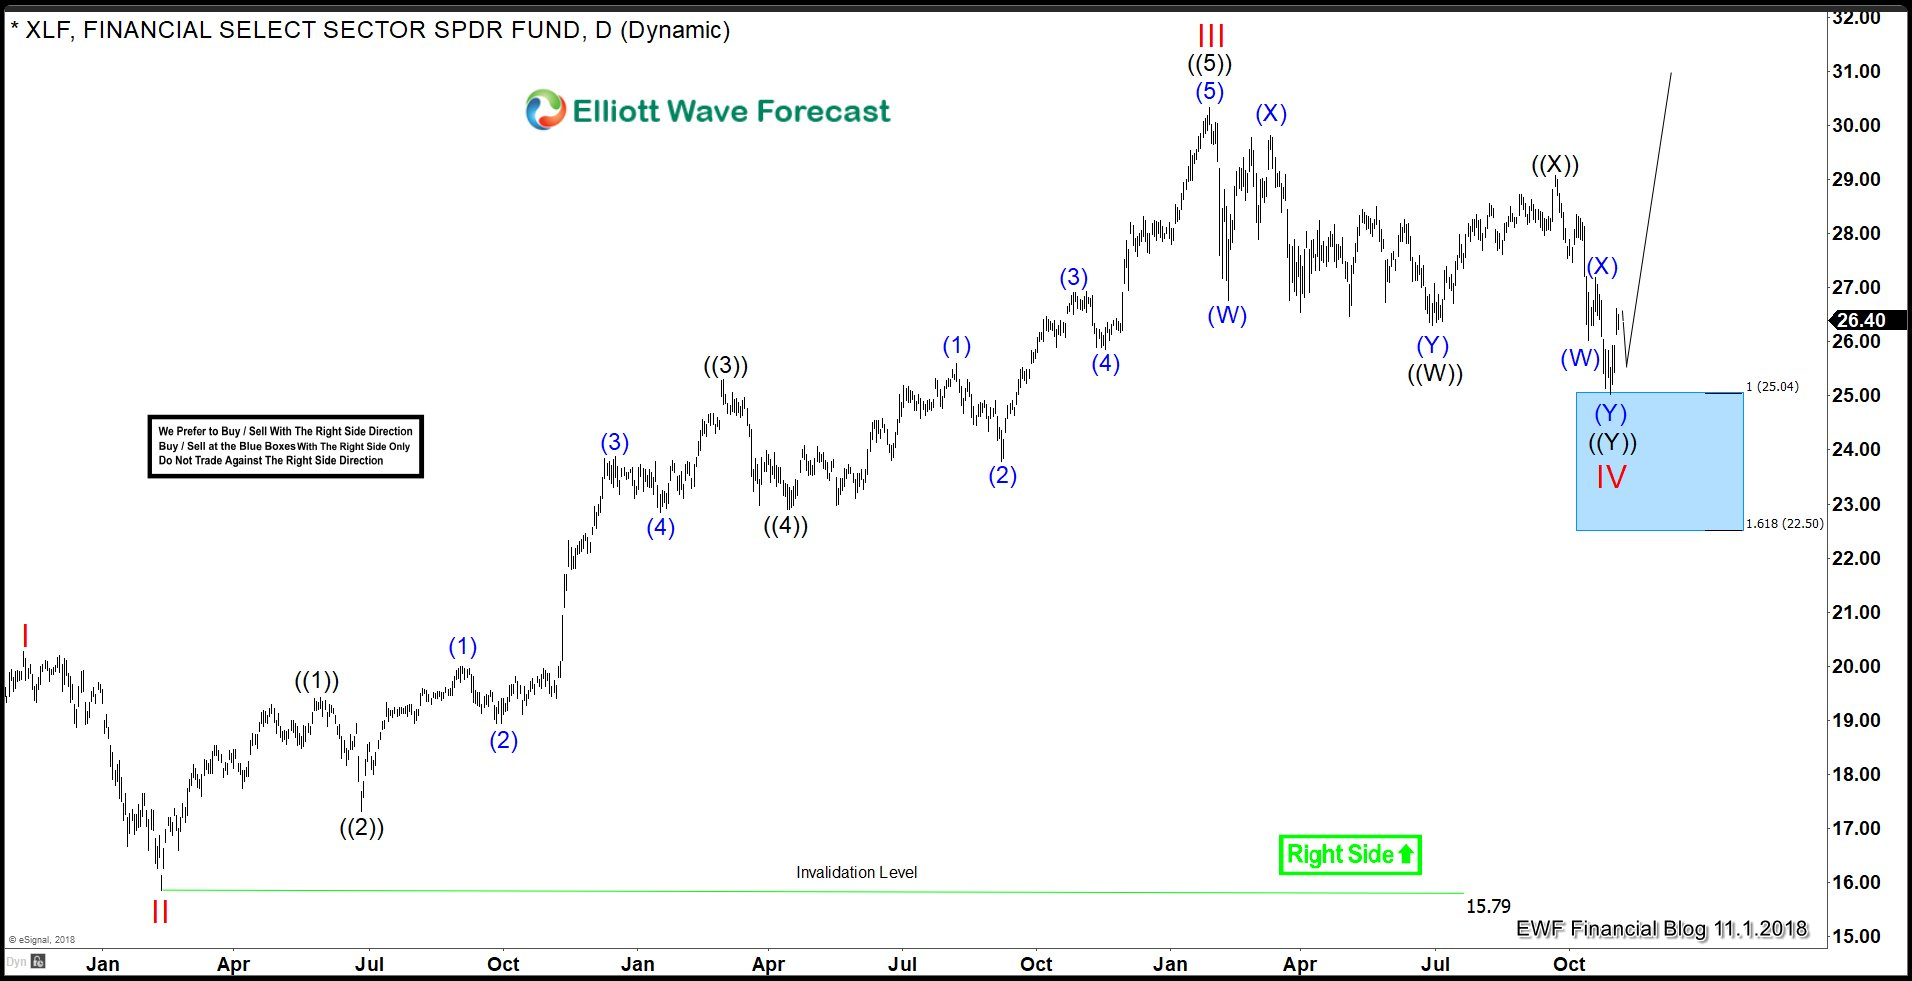 Elliott Wave Analysis Suggests It's Time to Buy the XLF and BAC